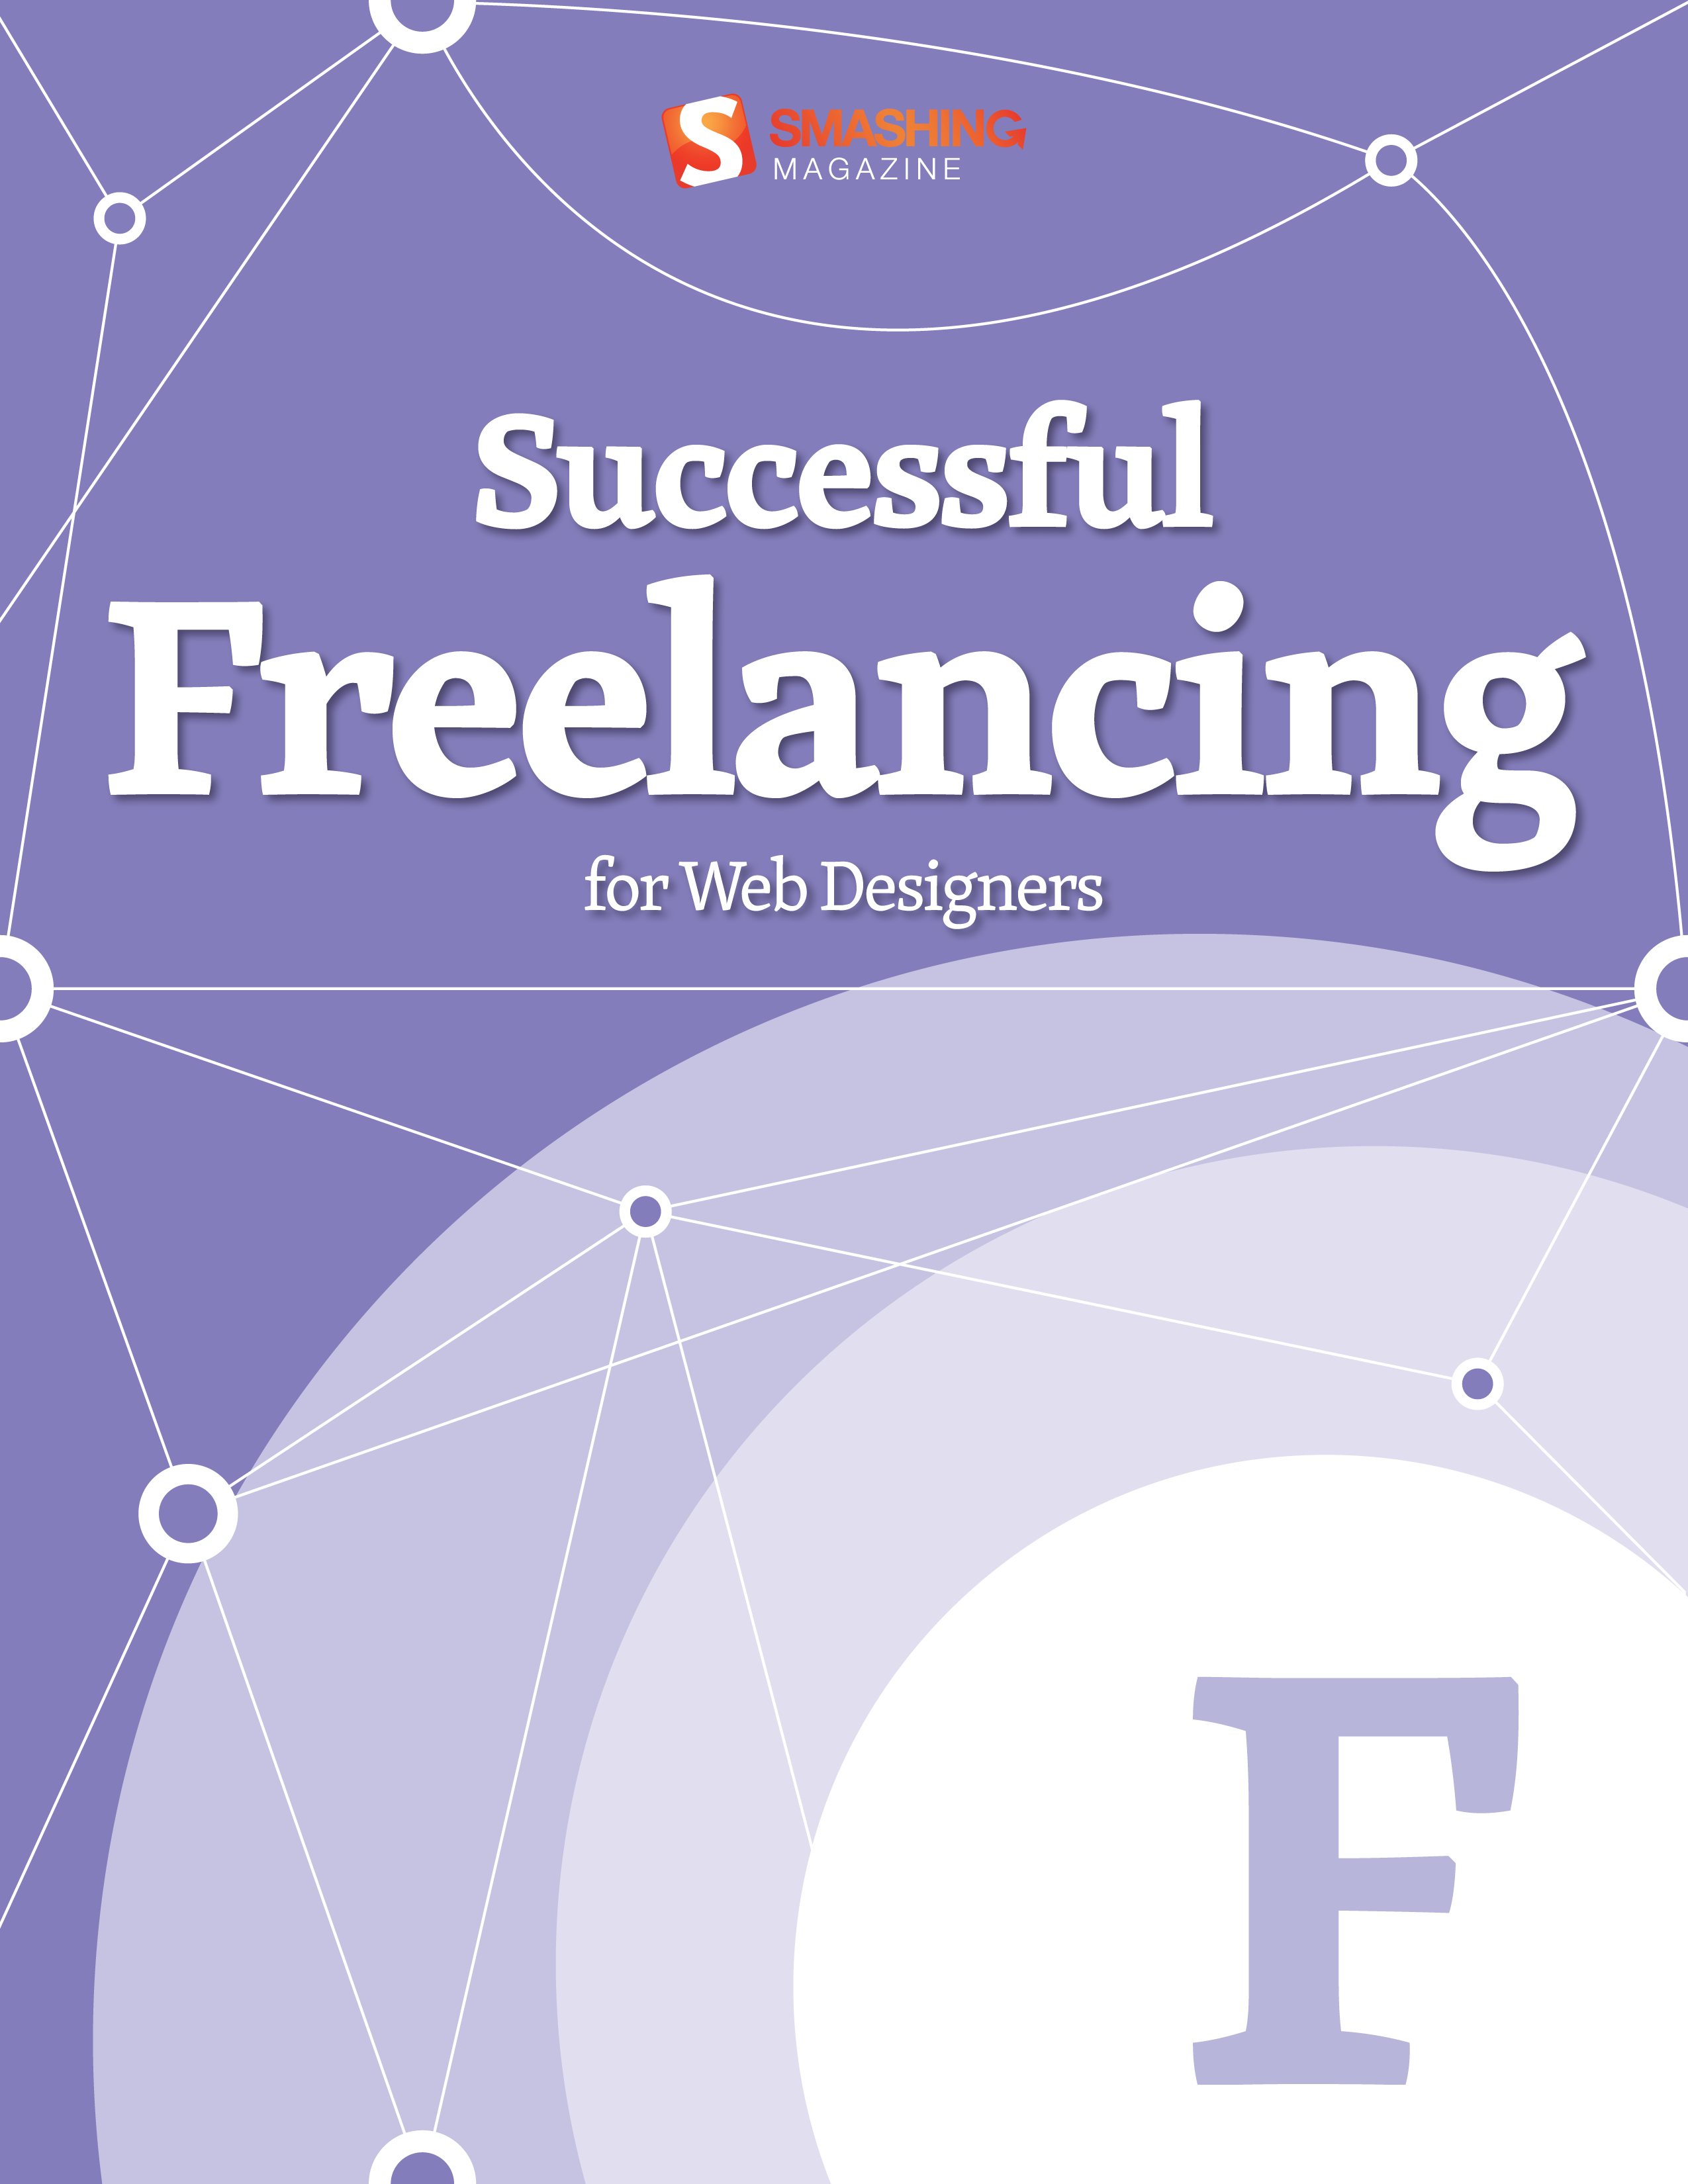 Successful Freelancing For Web Designers By: Smashing Magazine